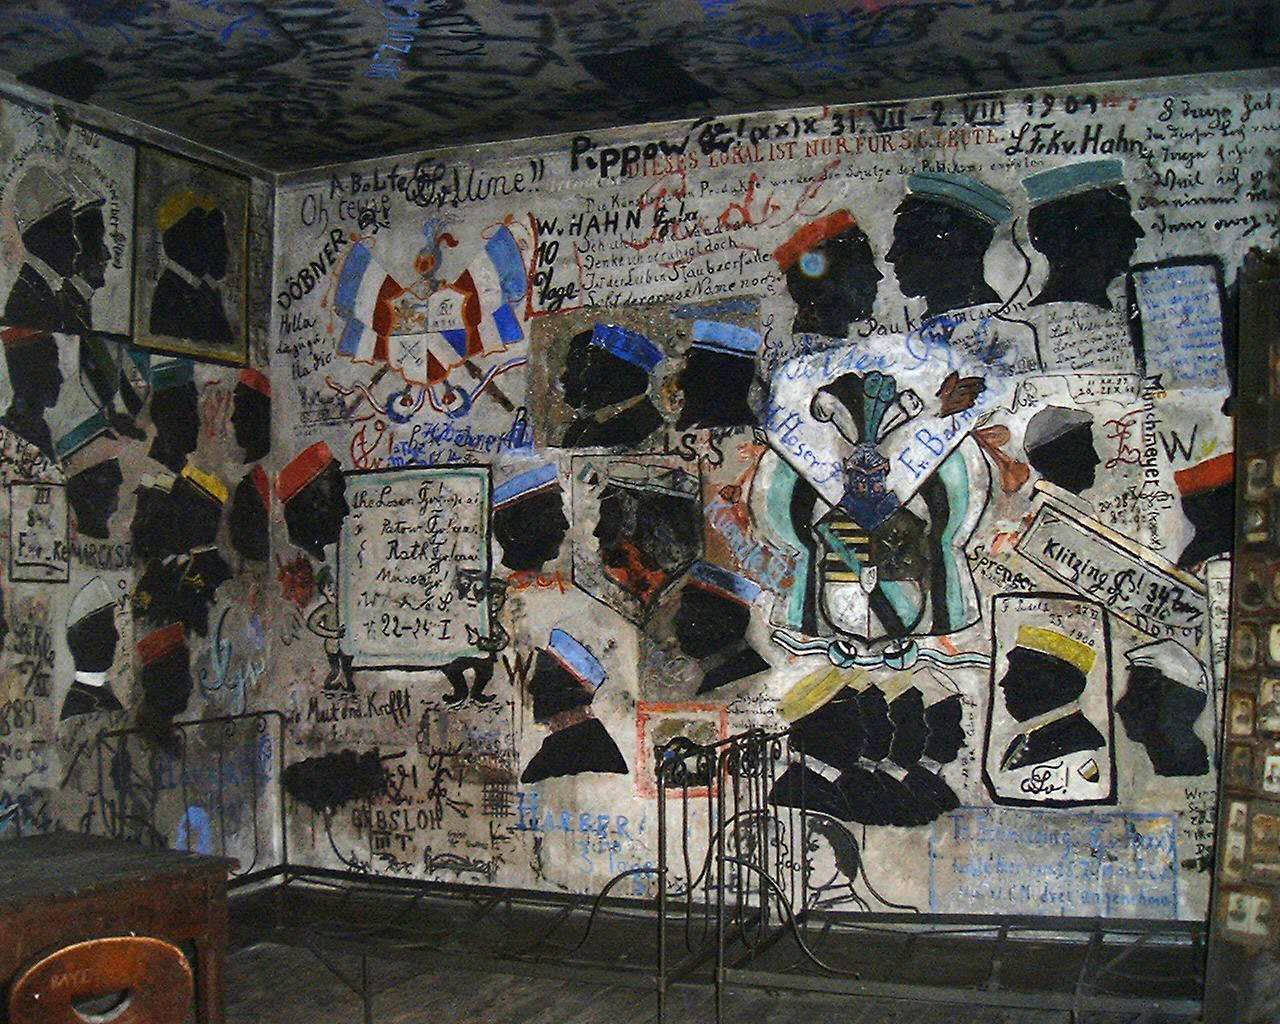 Student Graffiti in the Studentekarzer -photo by Wikipedia